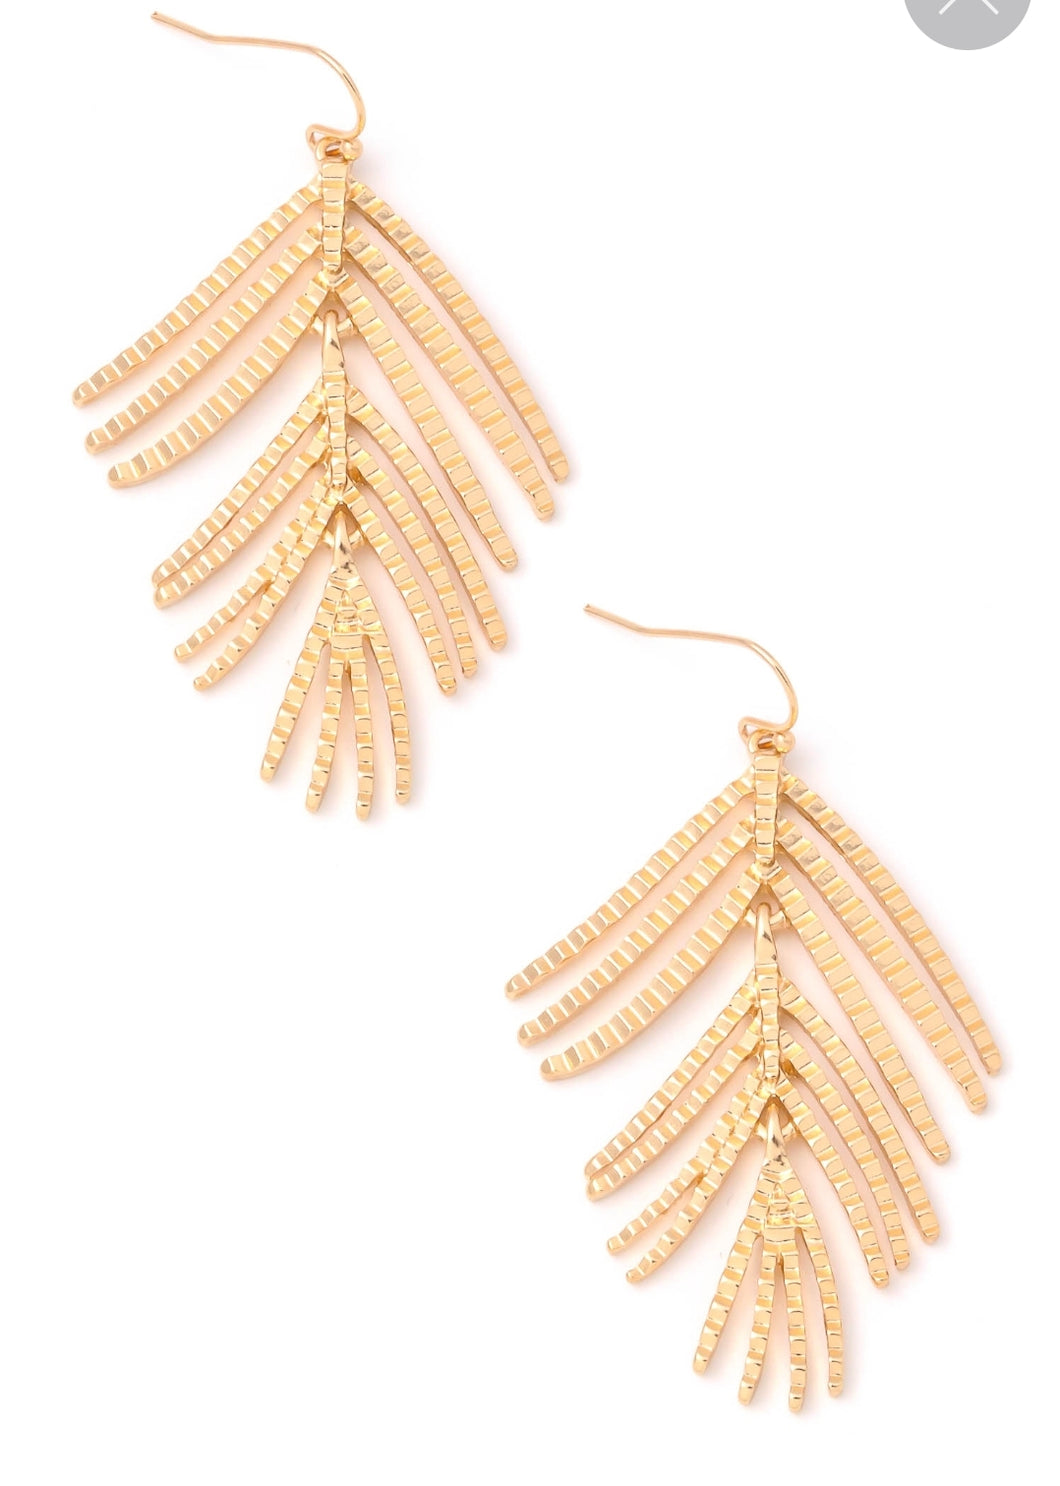 Gold Fern Earrings